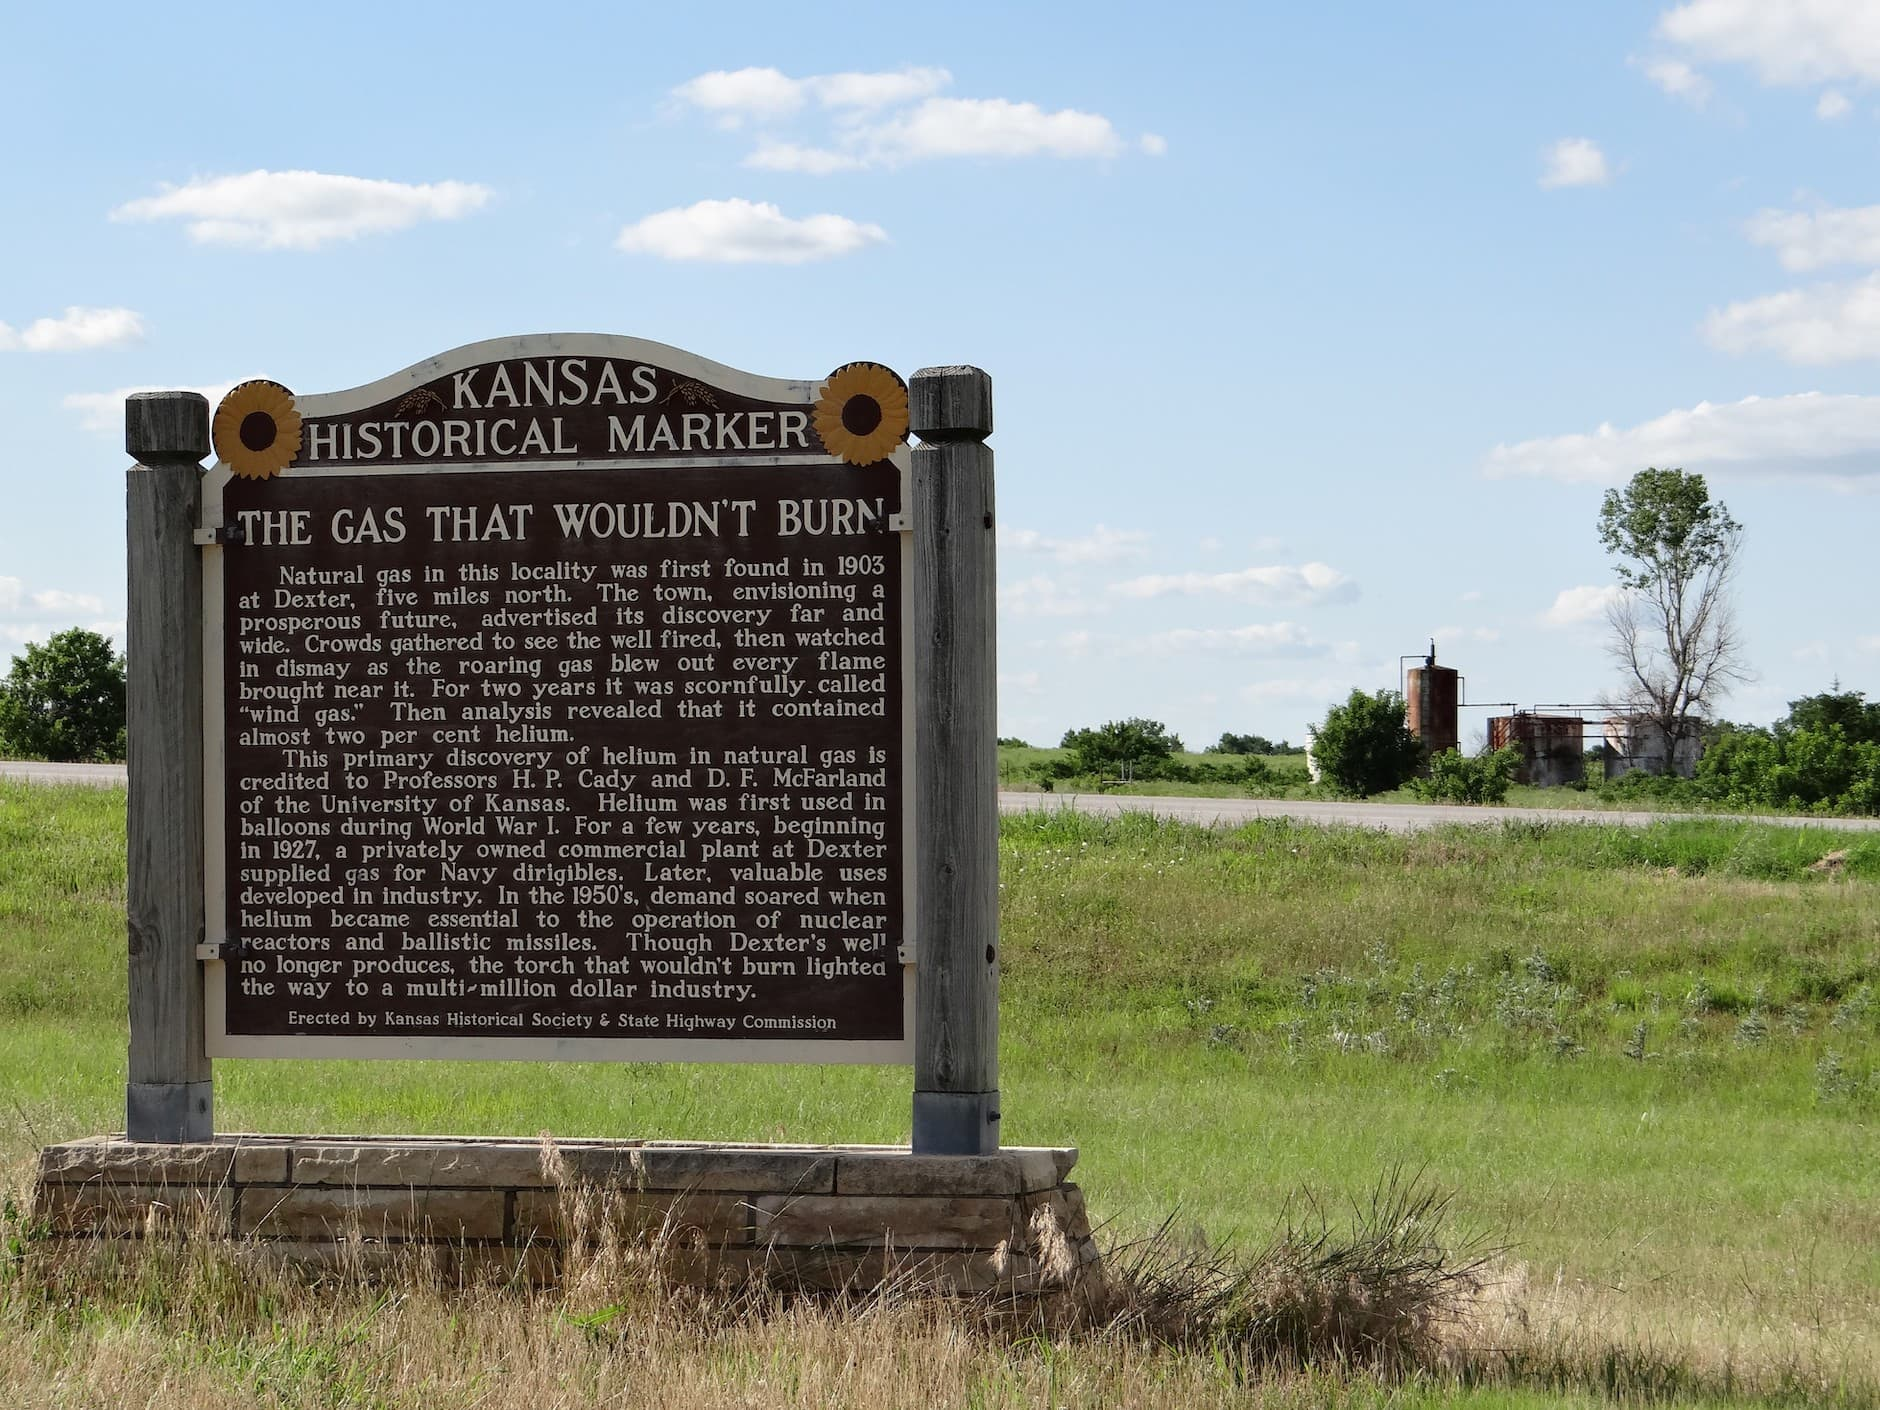 Kansas Historical Marker for Helium